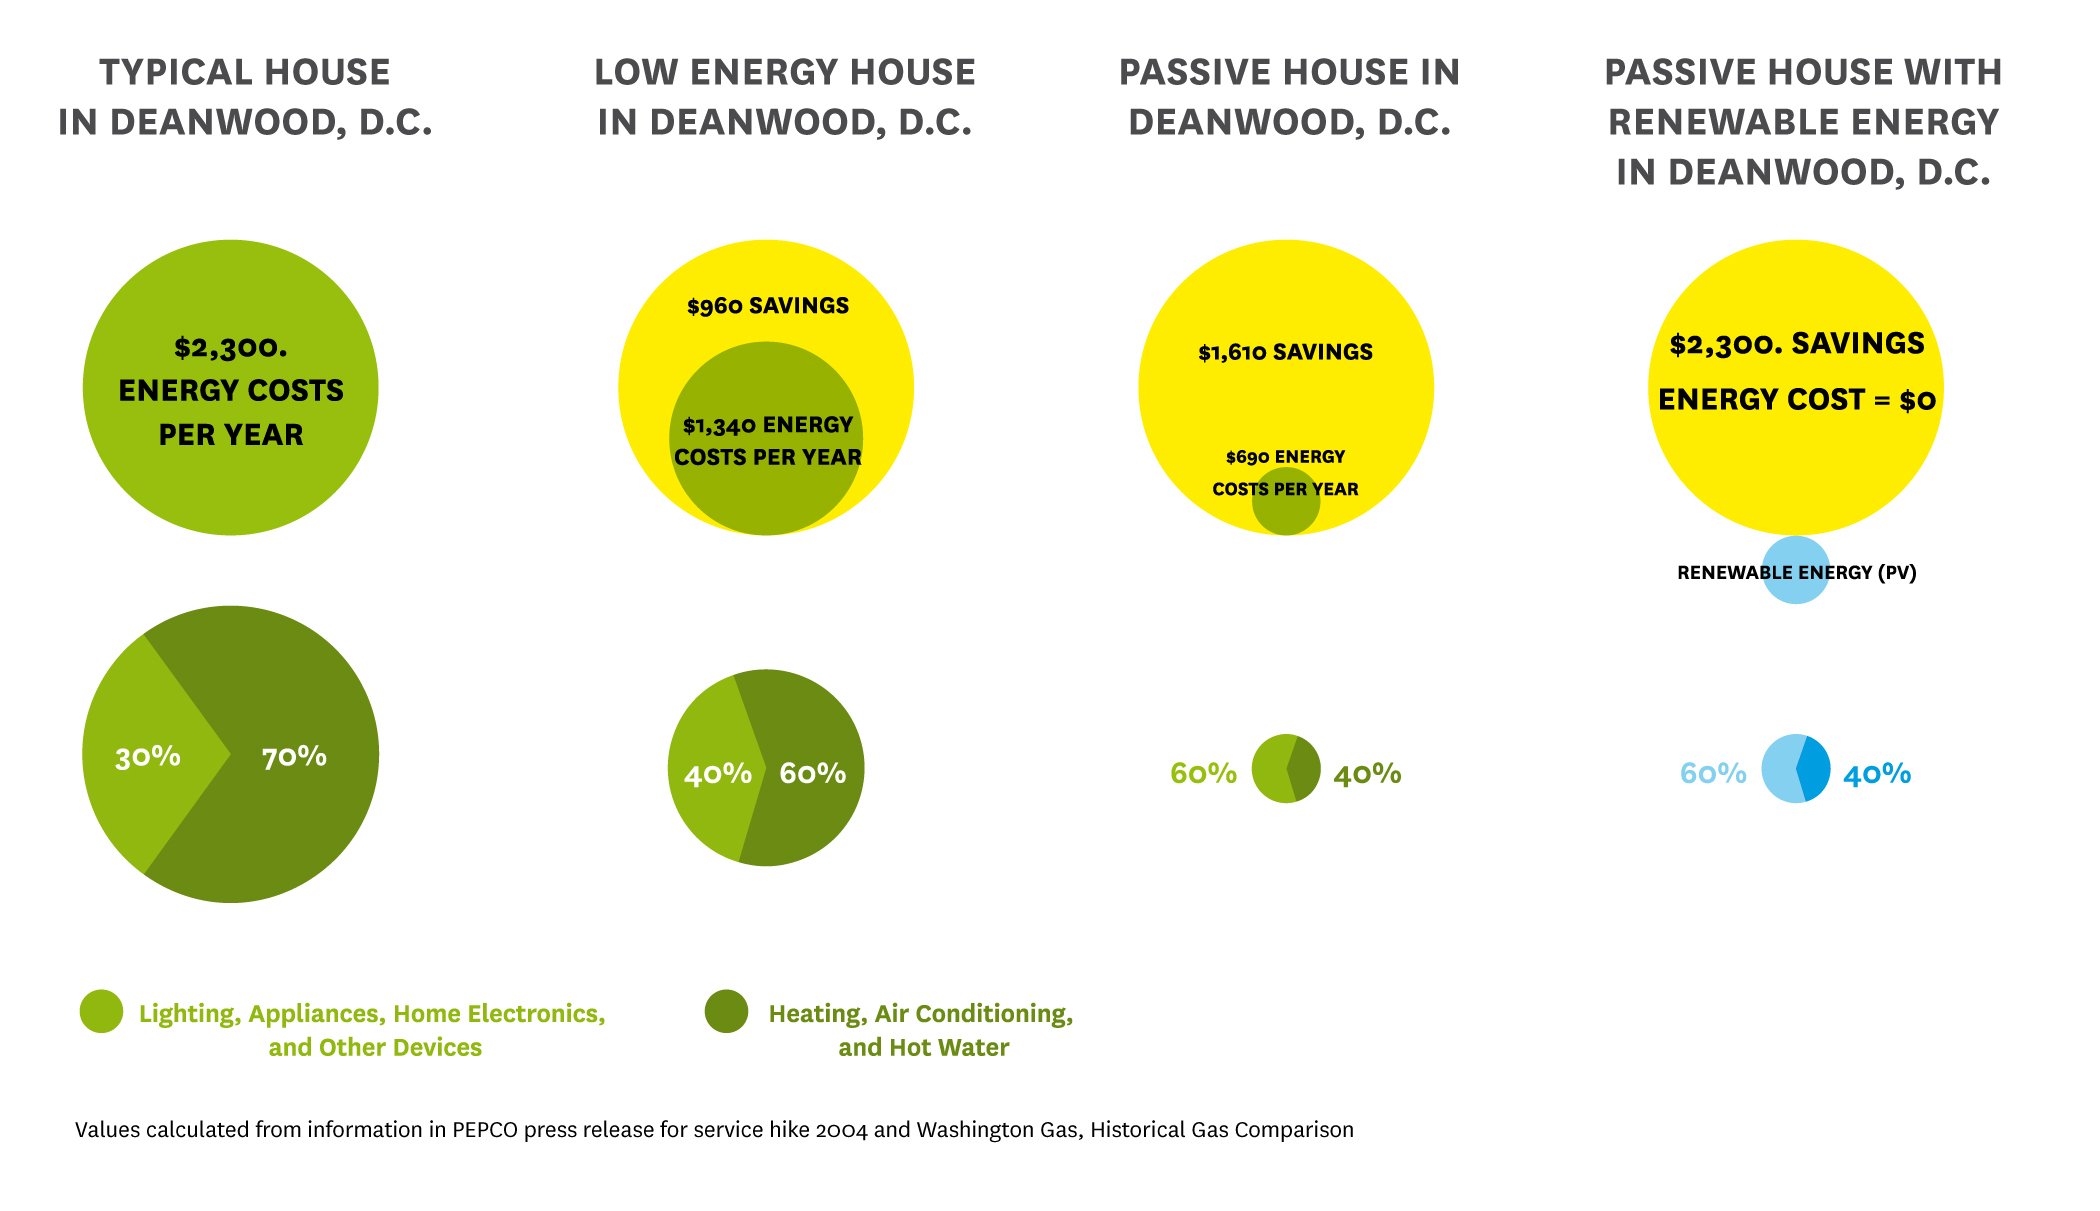 A comparison chart showing passive house energy costs vs. regular house energy costs